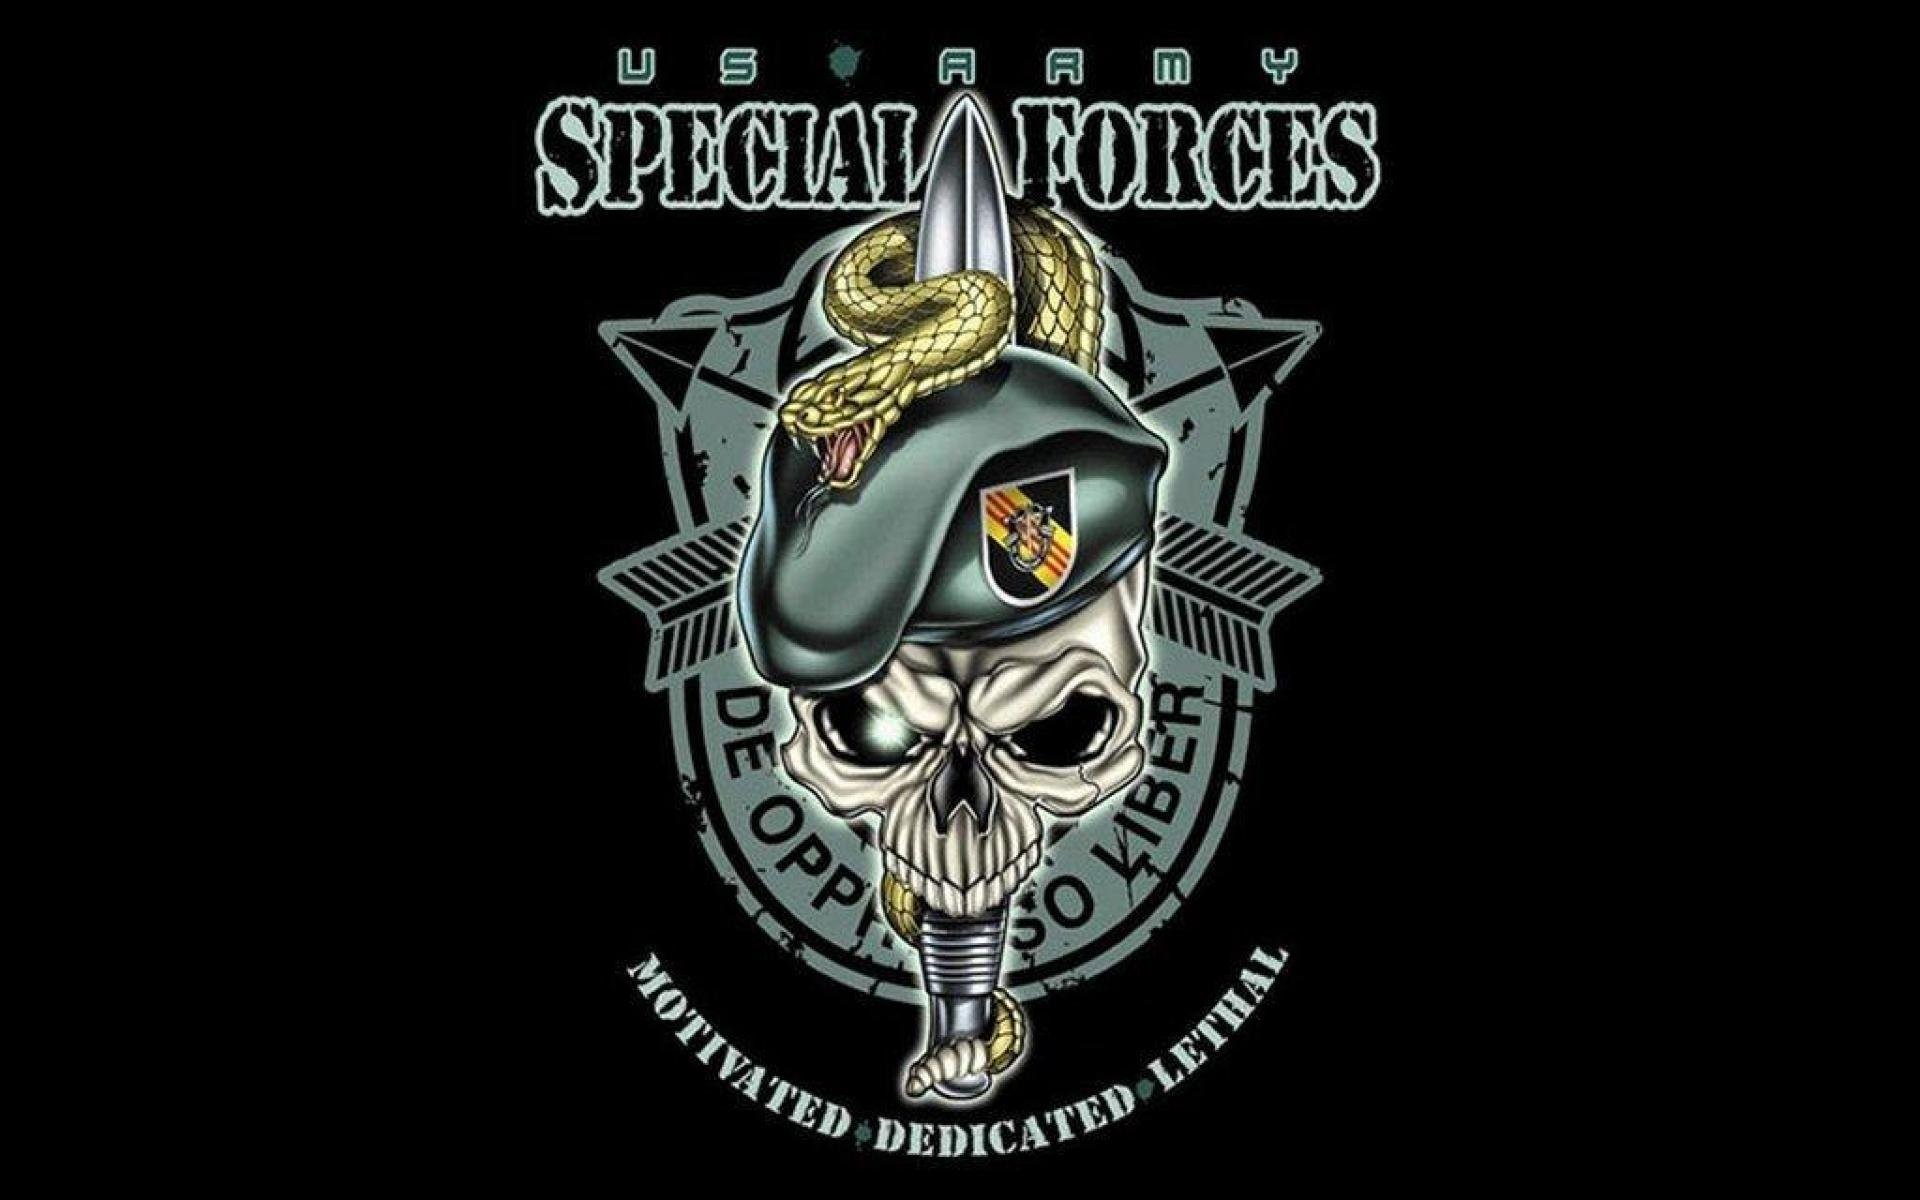 Special Forces Logo Wallpaper ·①